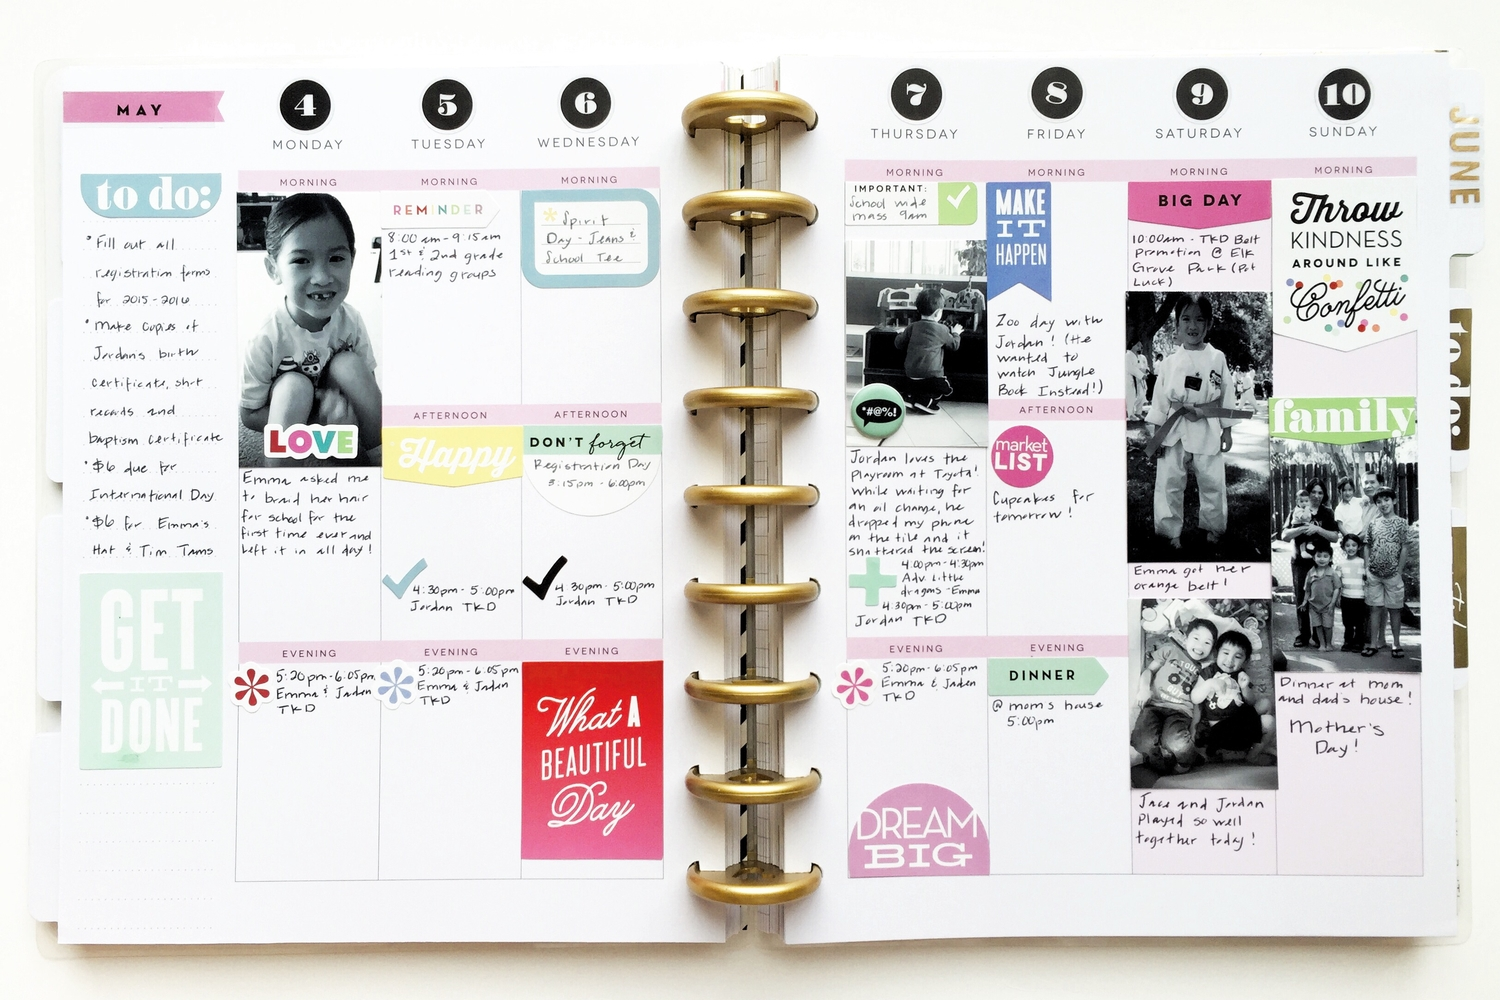 May week in Happy Planner™ with stickers, jots, & photos